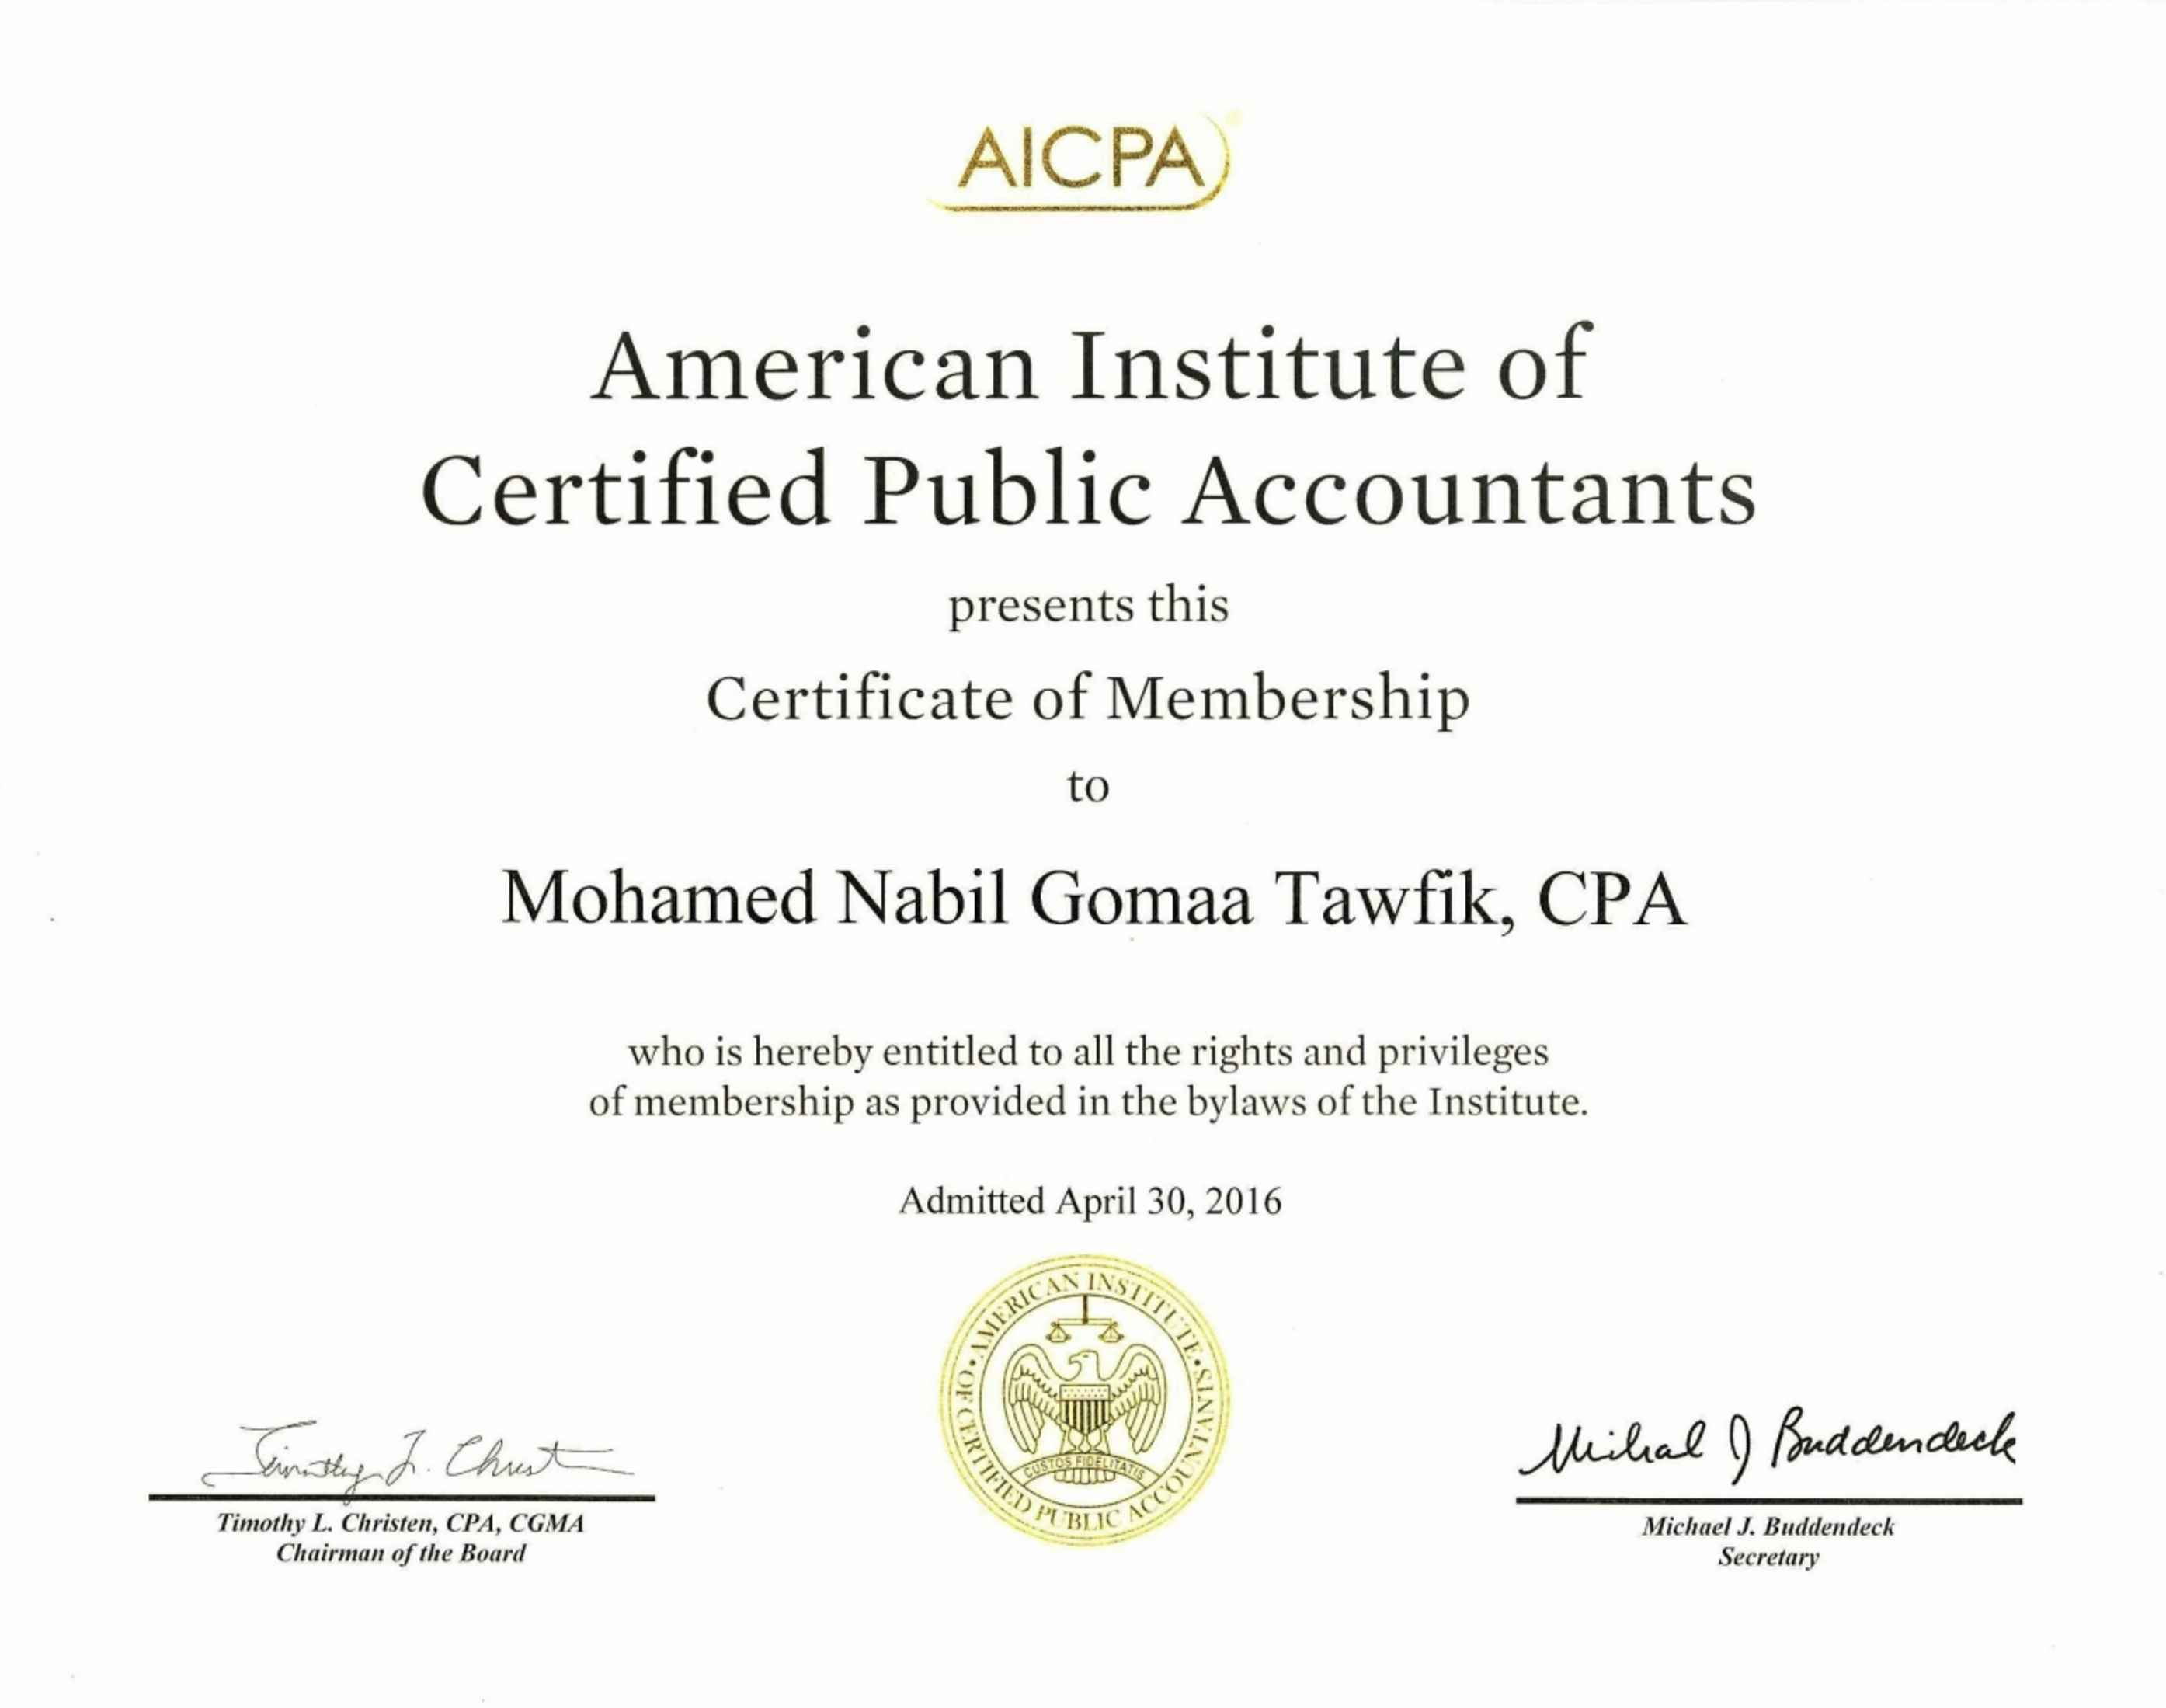 Mohamed tawfik cpa cma ctp csca cfa candidate bayt cpa certified public accountant american institute of certified public accountants aicpa usa diplme 1betcityfo Choice Image